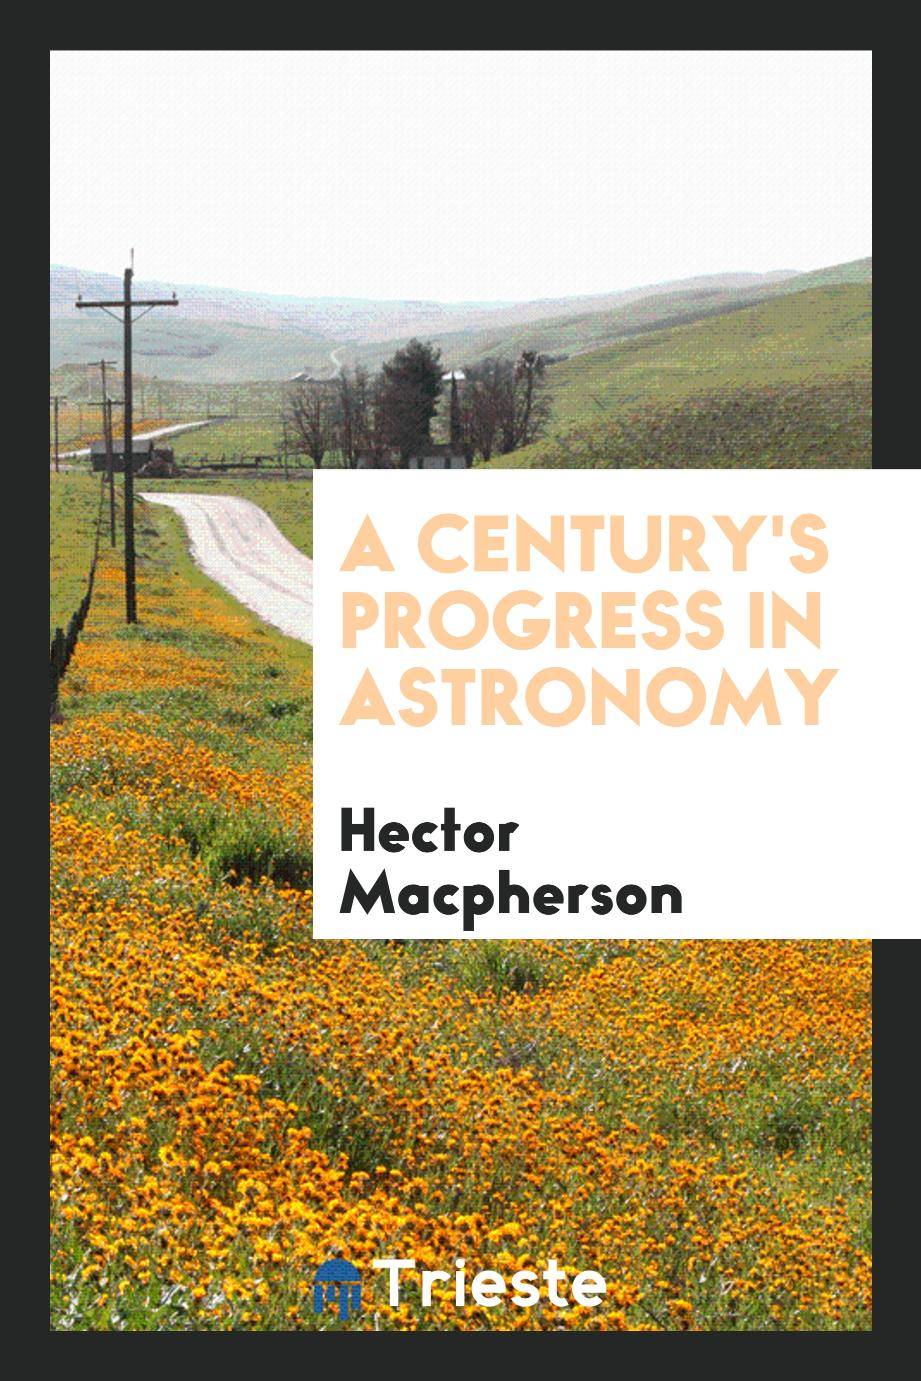 A century's progress in astronomy